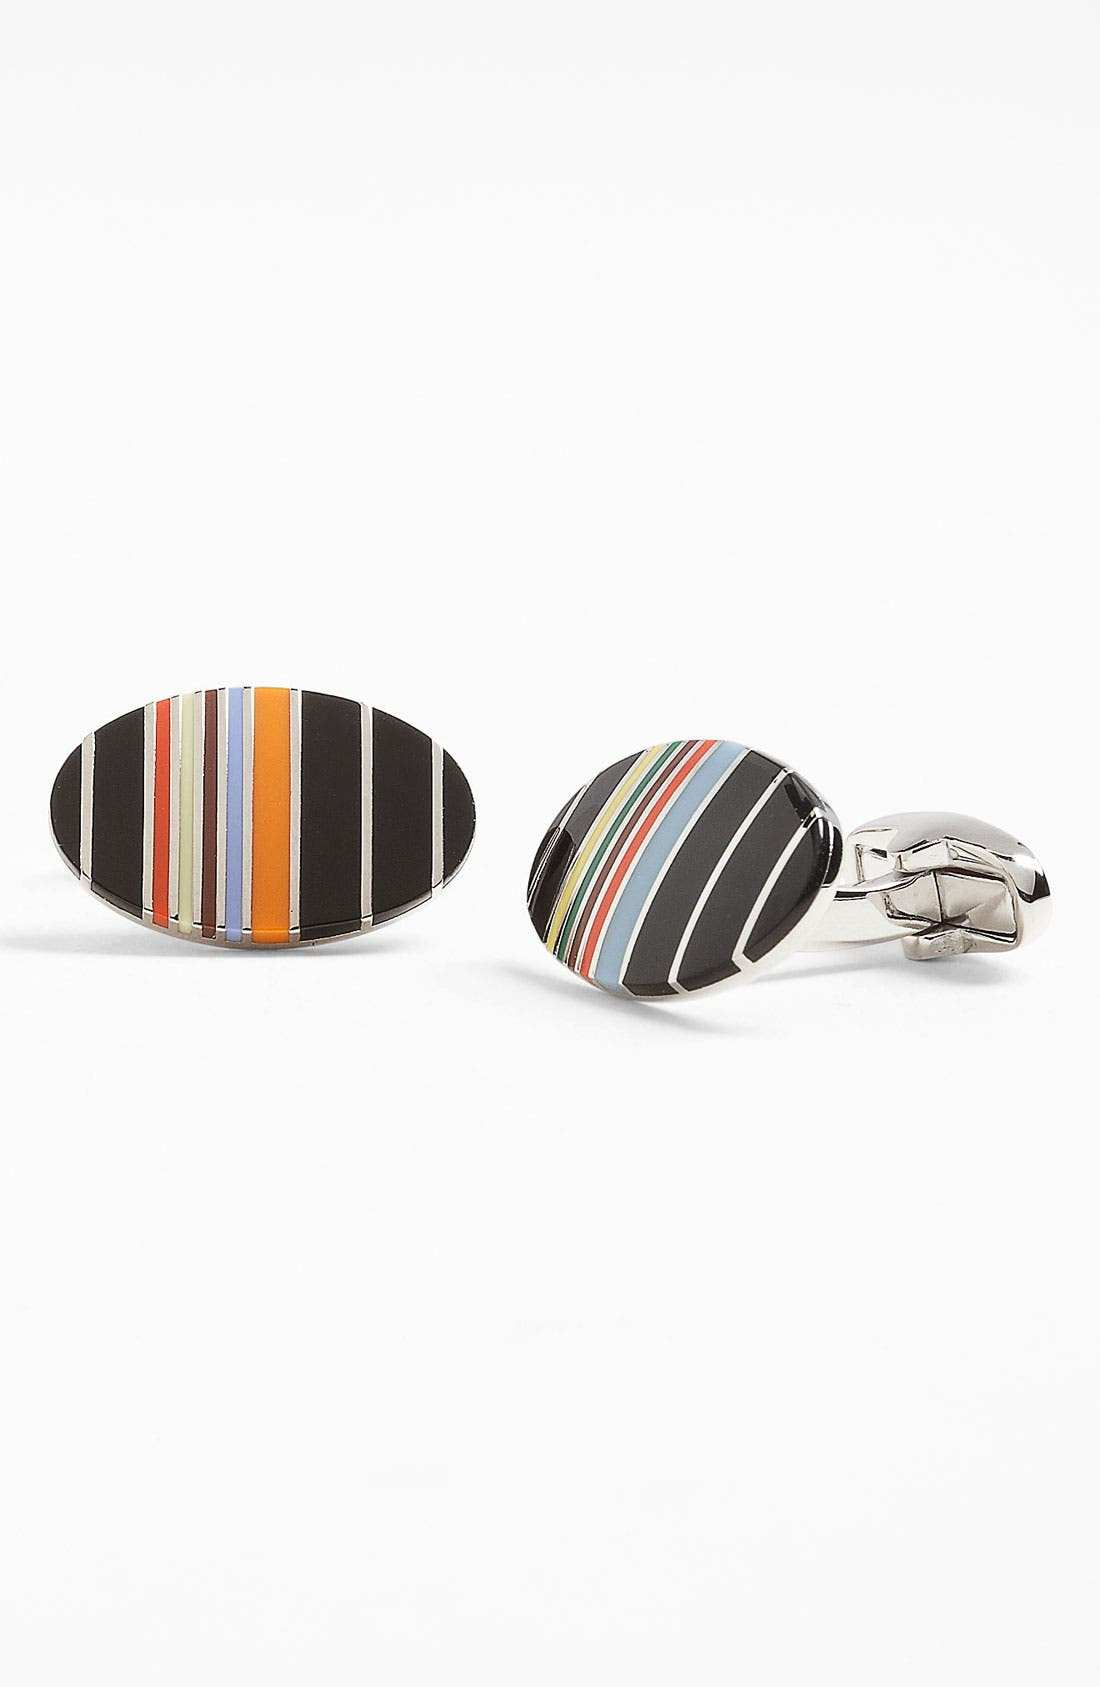 Main Image - Paul Smith Accessories Stripe Cuff Links